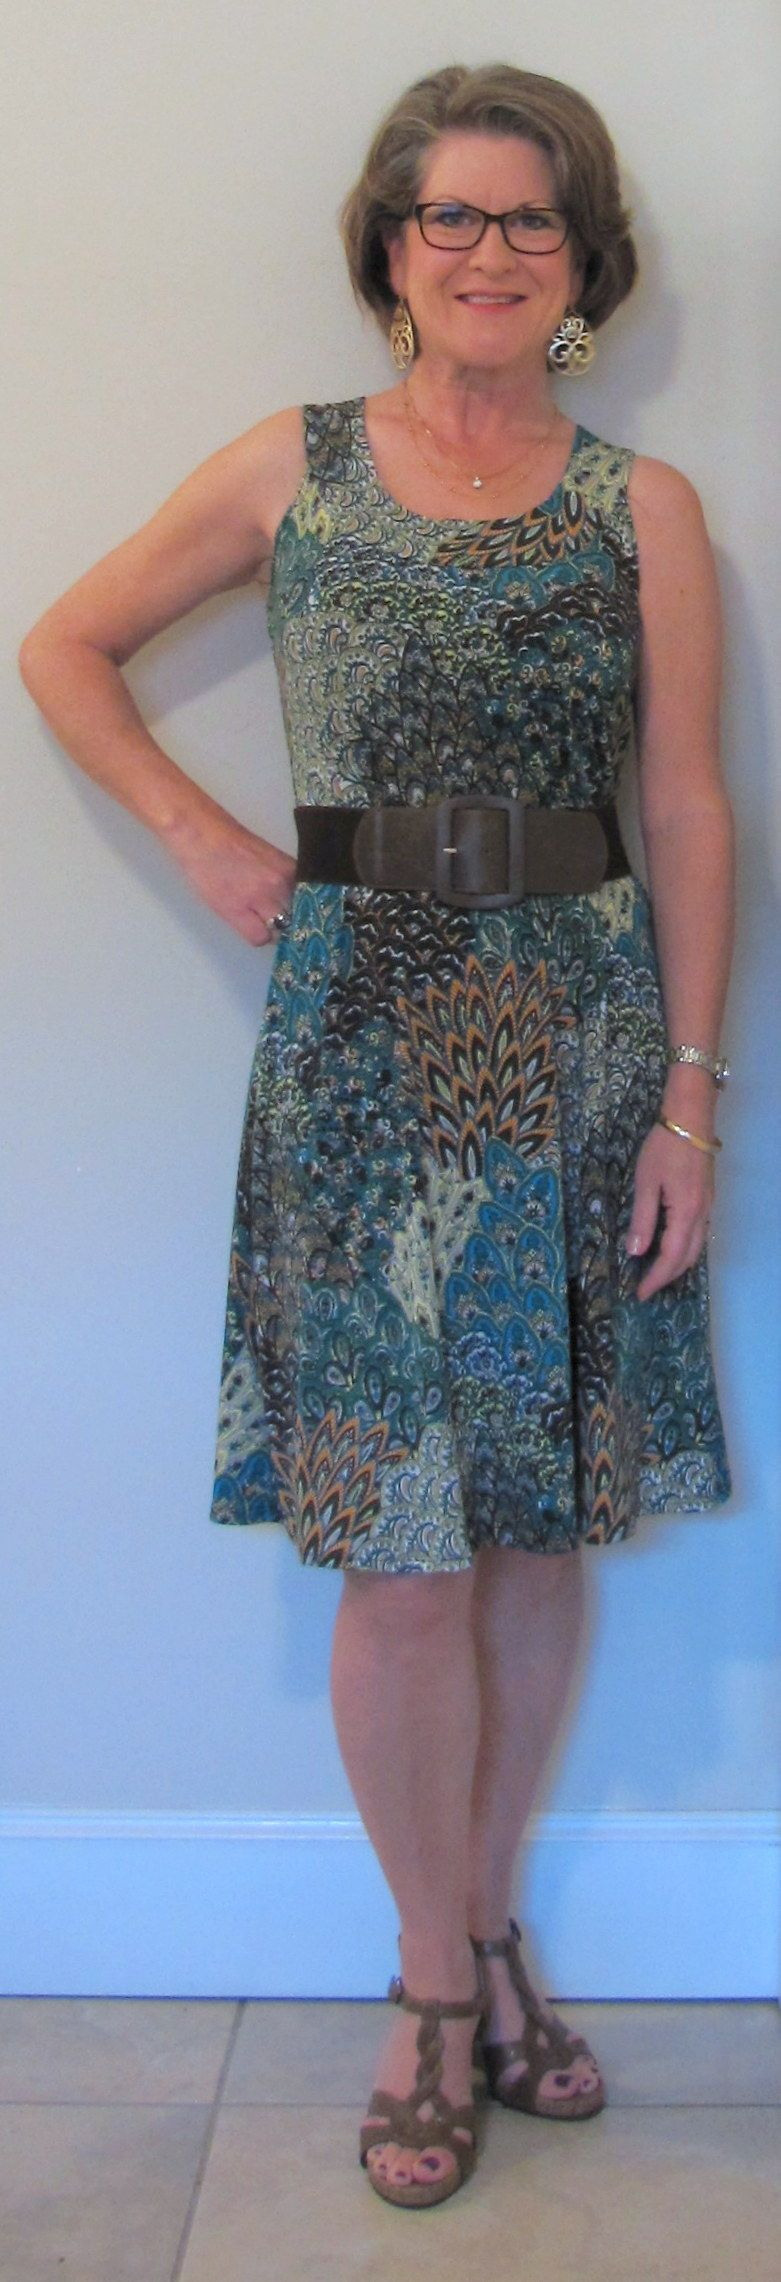 summer fashions for women over 50 | Style Savvy DFW ...